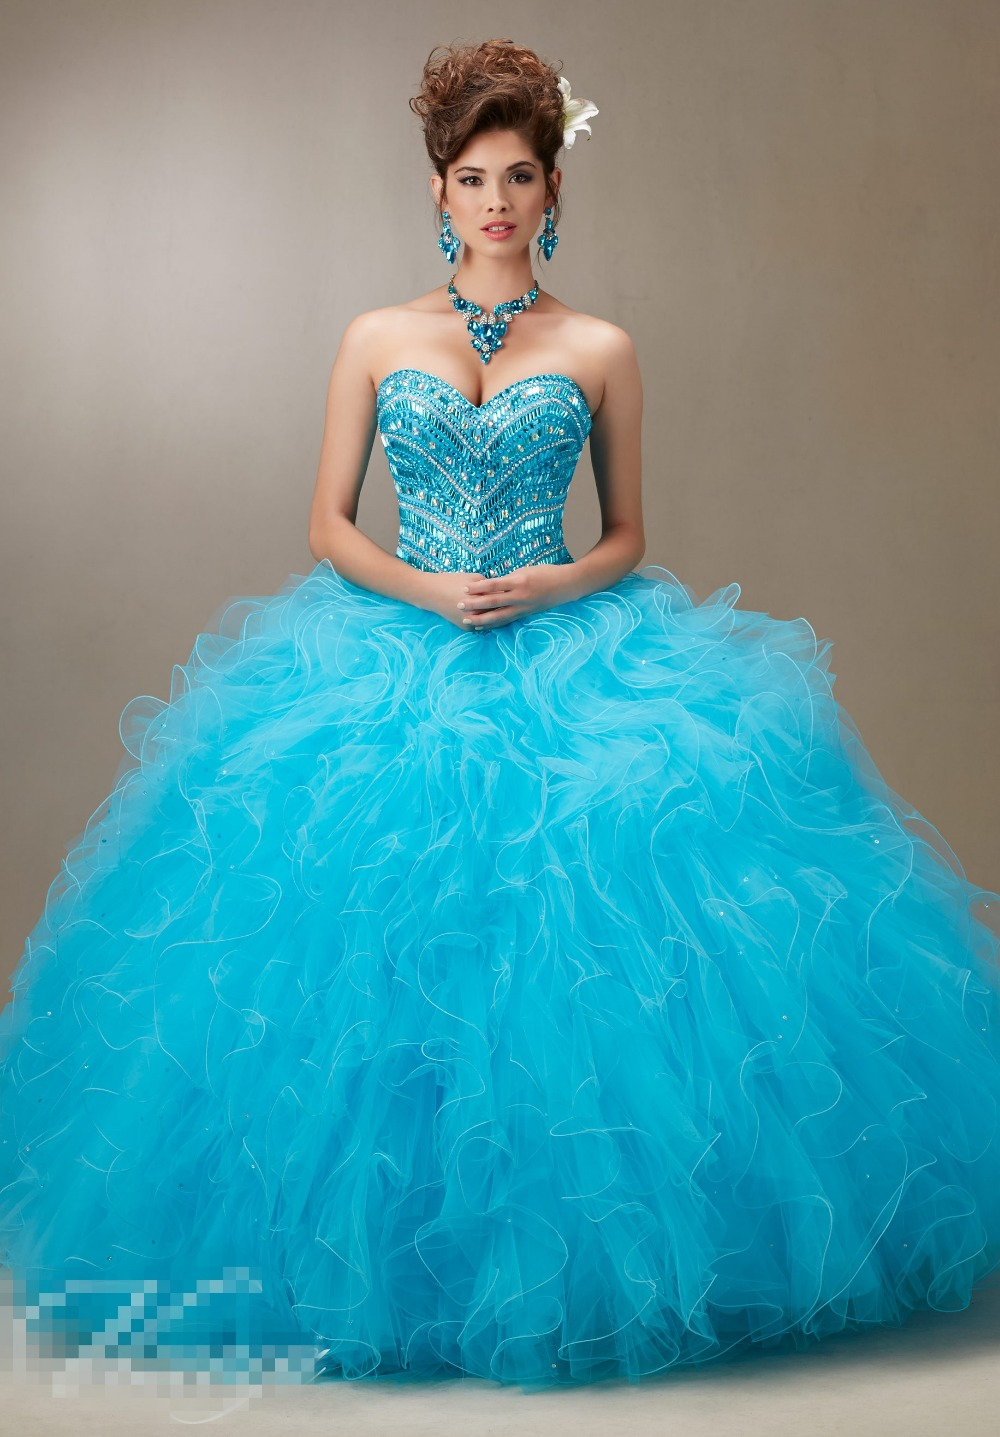 Awesome Big Prom Dresses Contemporary - Styles & Ideas 2018 - sperr.us